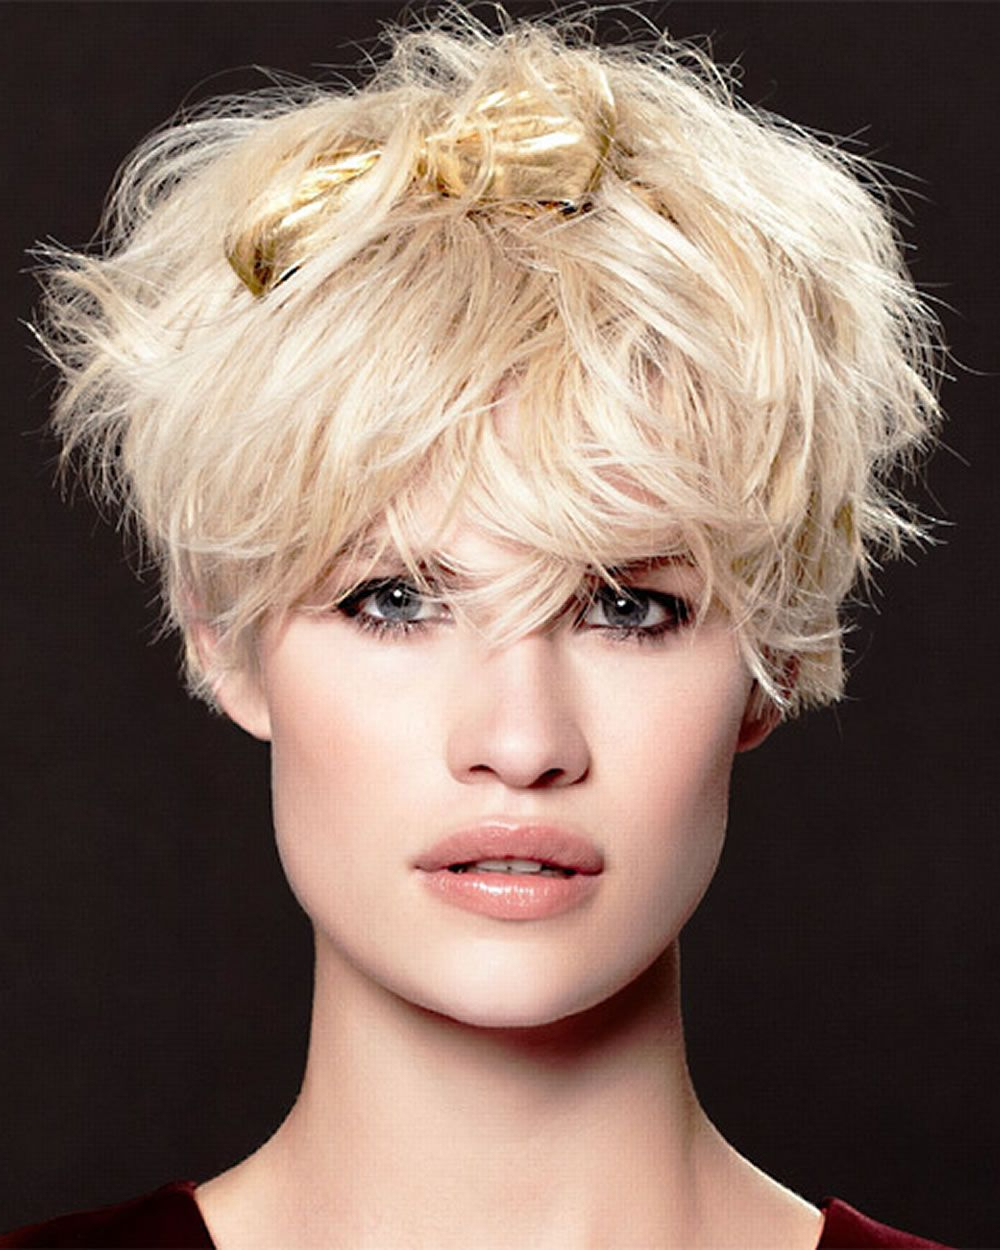 Short Haircuts Pixie And Bob For Women 2018 2019 | Hair | Pinterest In Pixie Layered Short Haircuts (View 22 of 25)